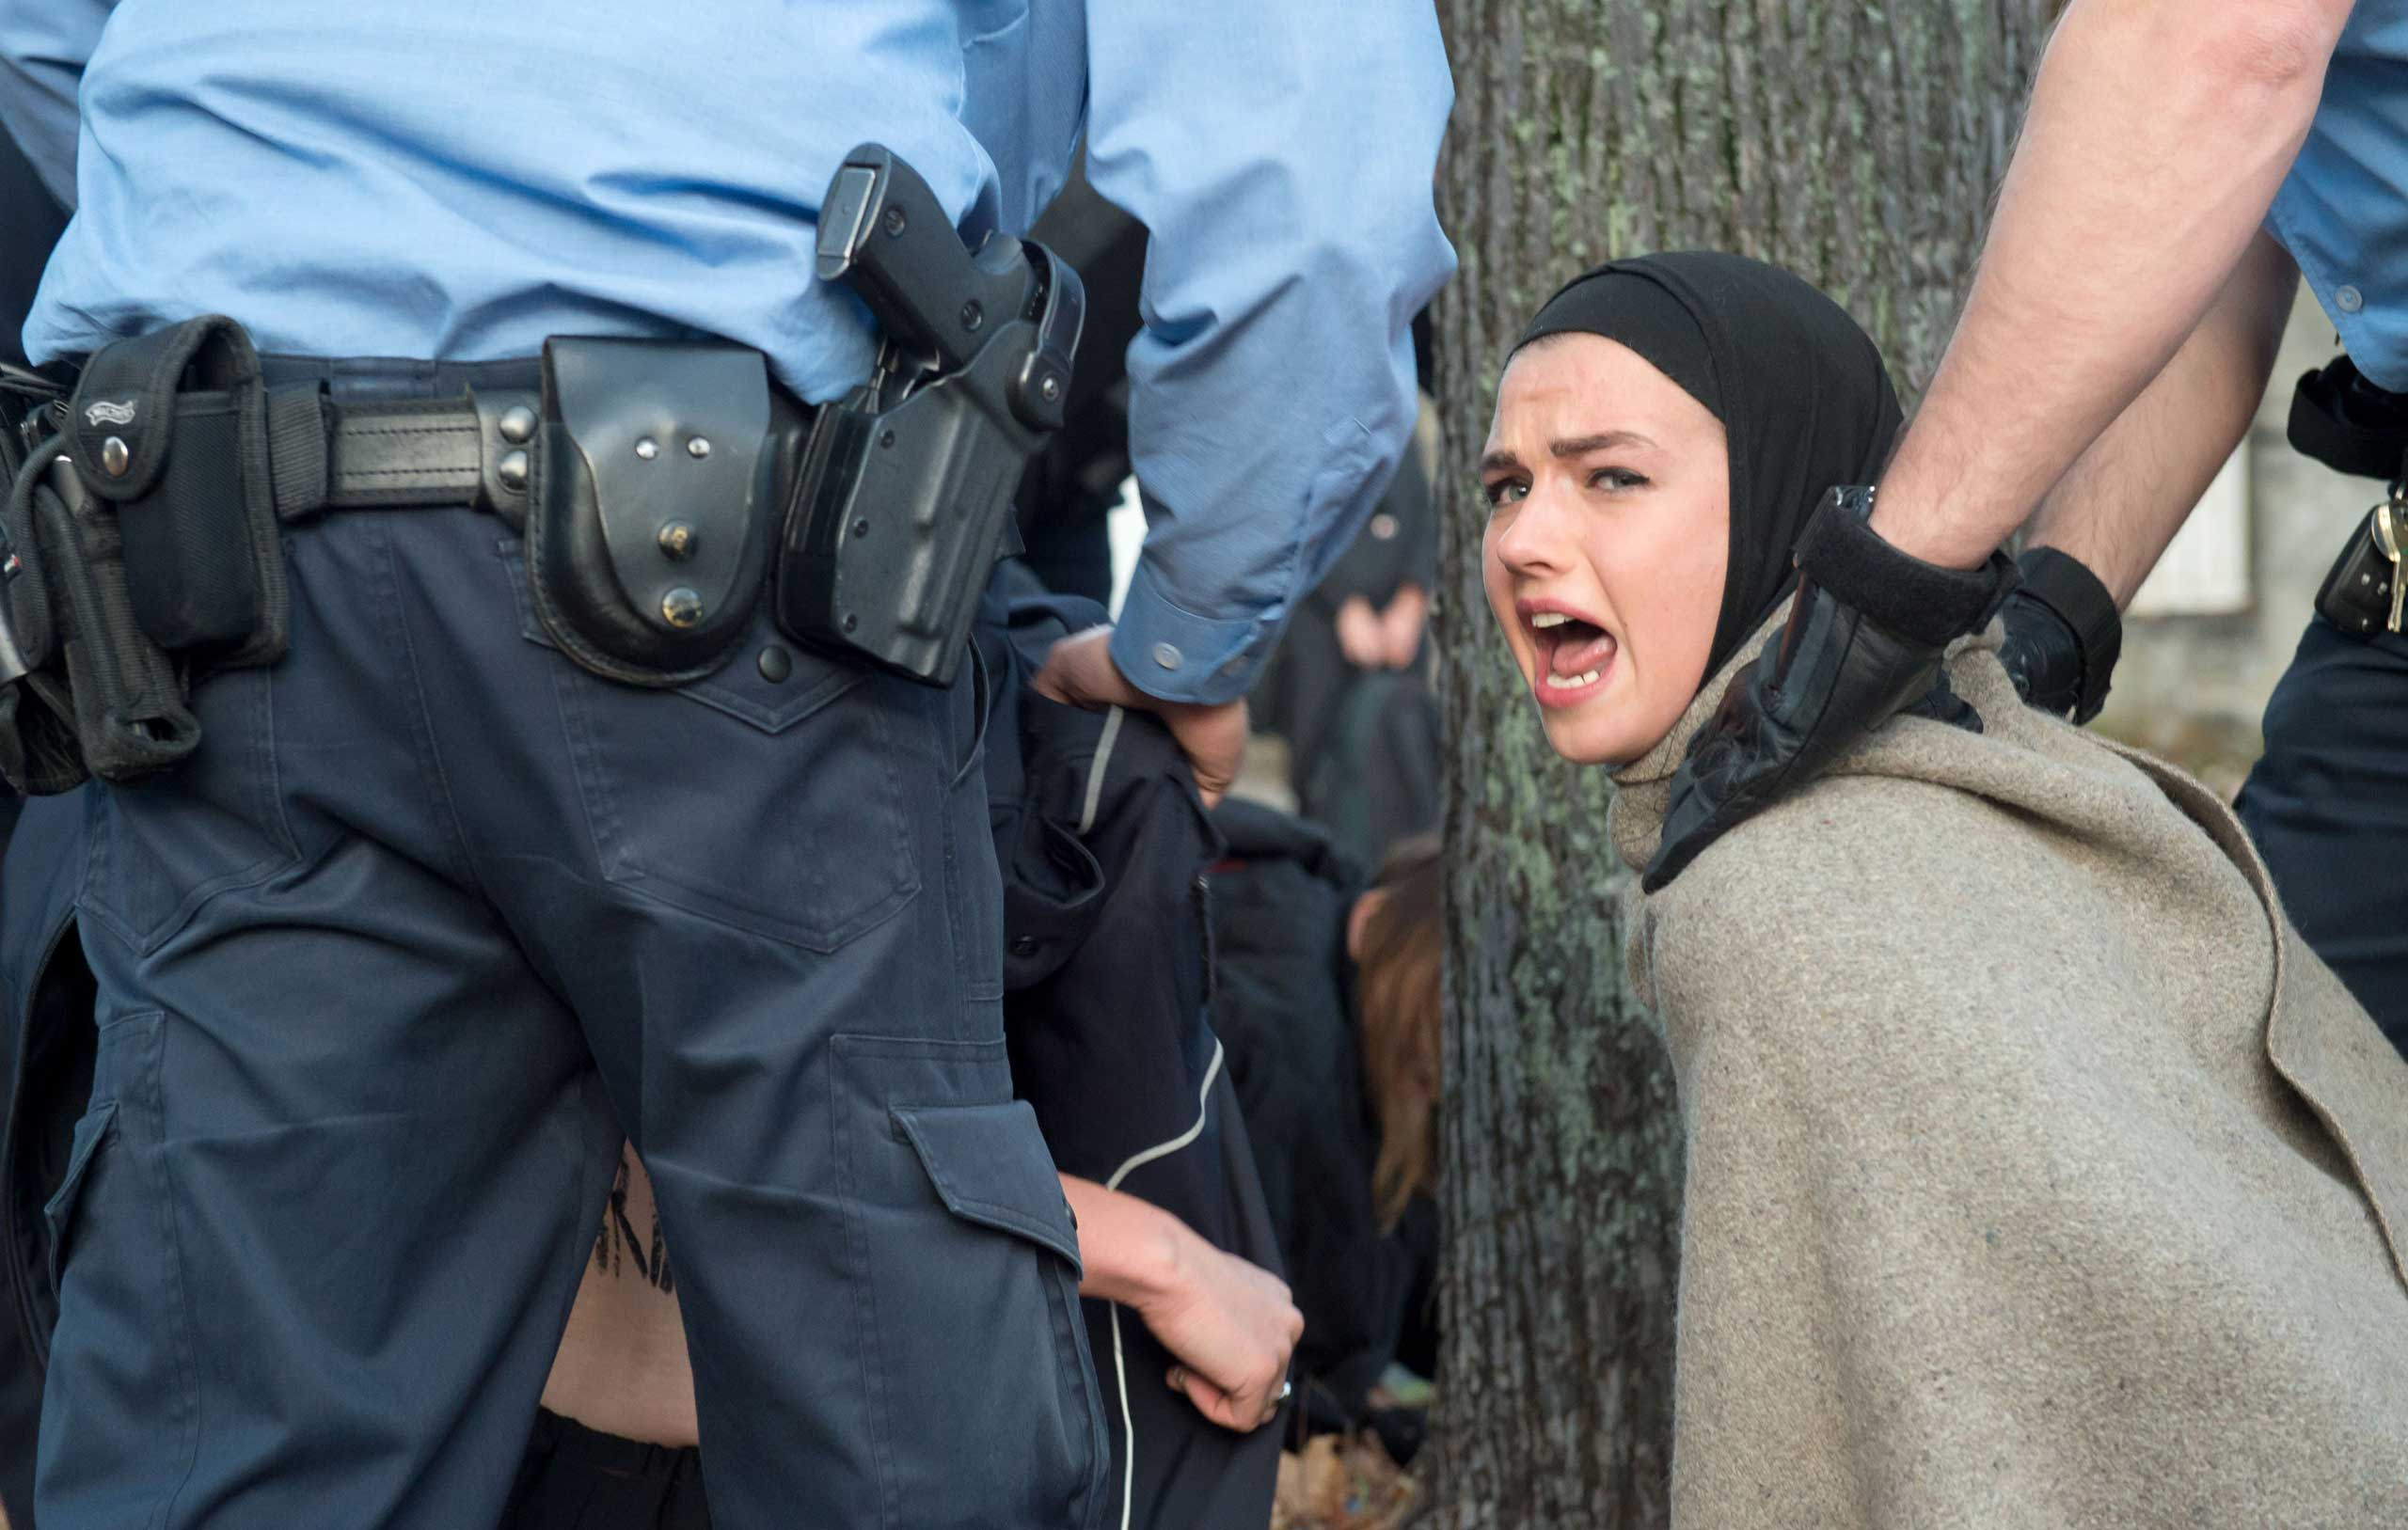 Oct. 27, 2014. Police officers clear away protestors during a demonstration of feminist organization, Femen, in front of the Iranian embassy in Berlin. The protest addresses the execution of a 19-year old woman in Iran.